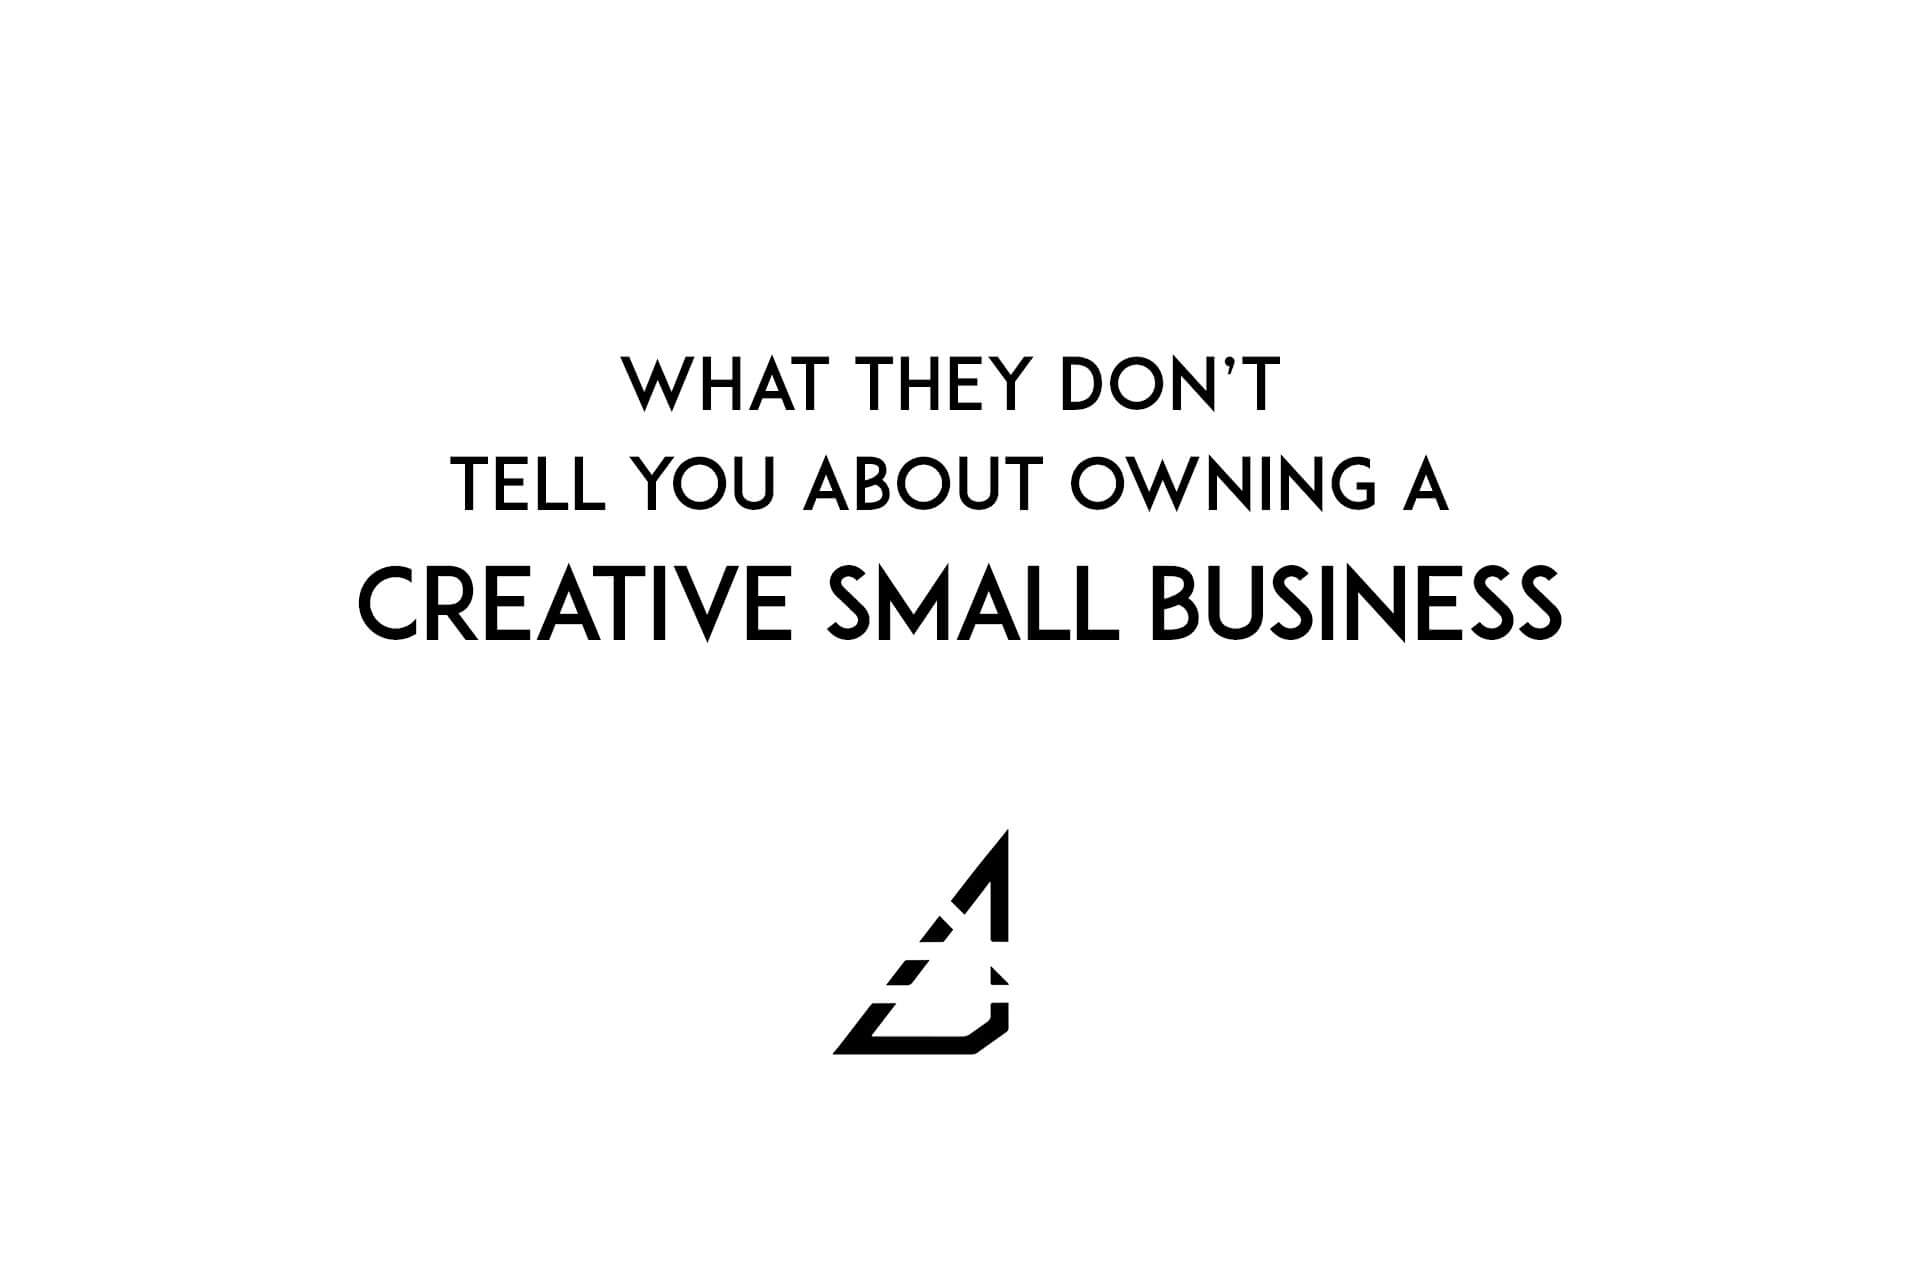 What they don't tell you about owning a creative small business